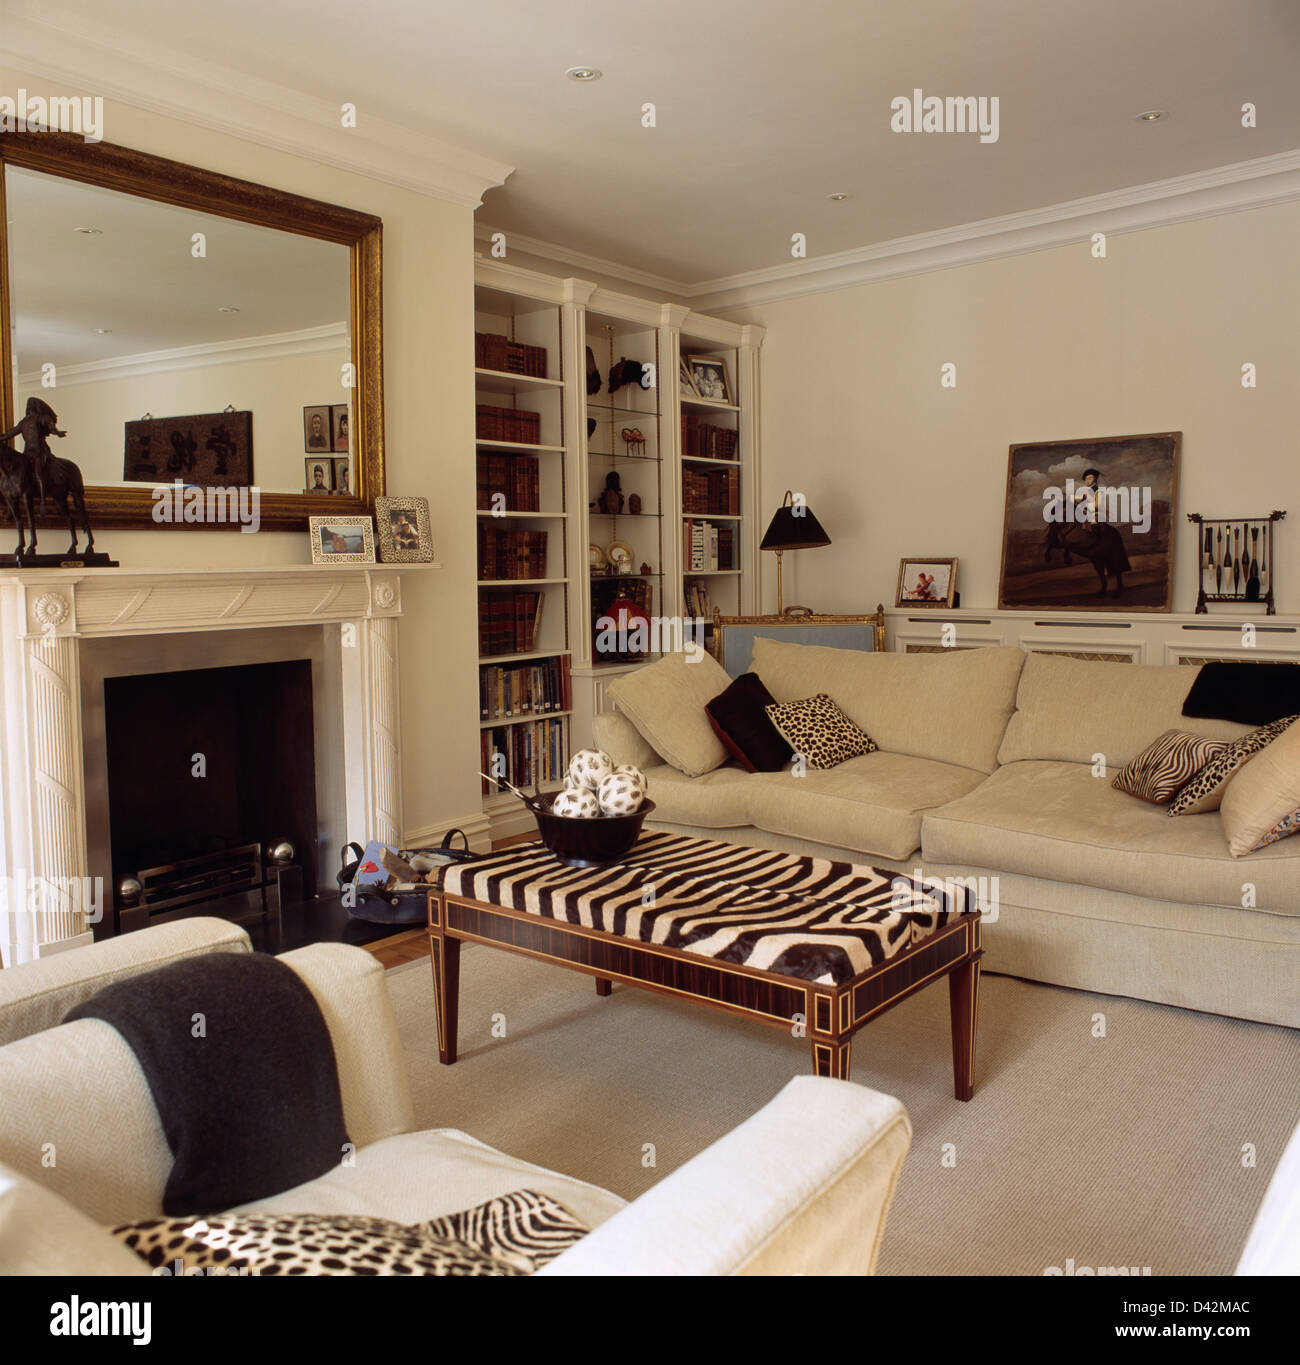 attractive Living Room With Cream Sofa Part - 15: Zebra print stool and cream sofa in elegant living room with large mirror  above marble fireplace between fitted bookcases